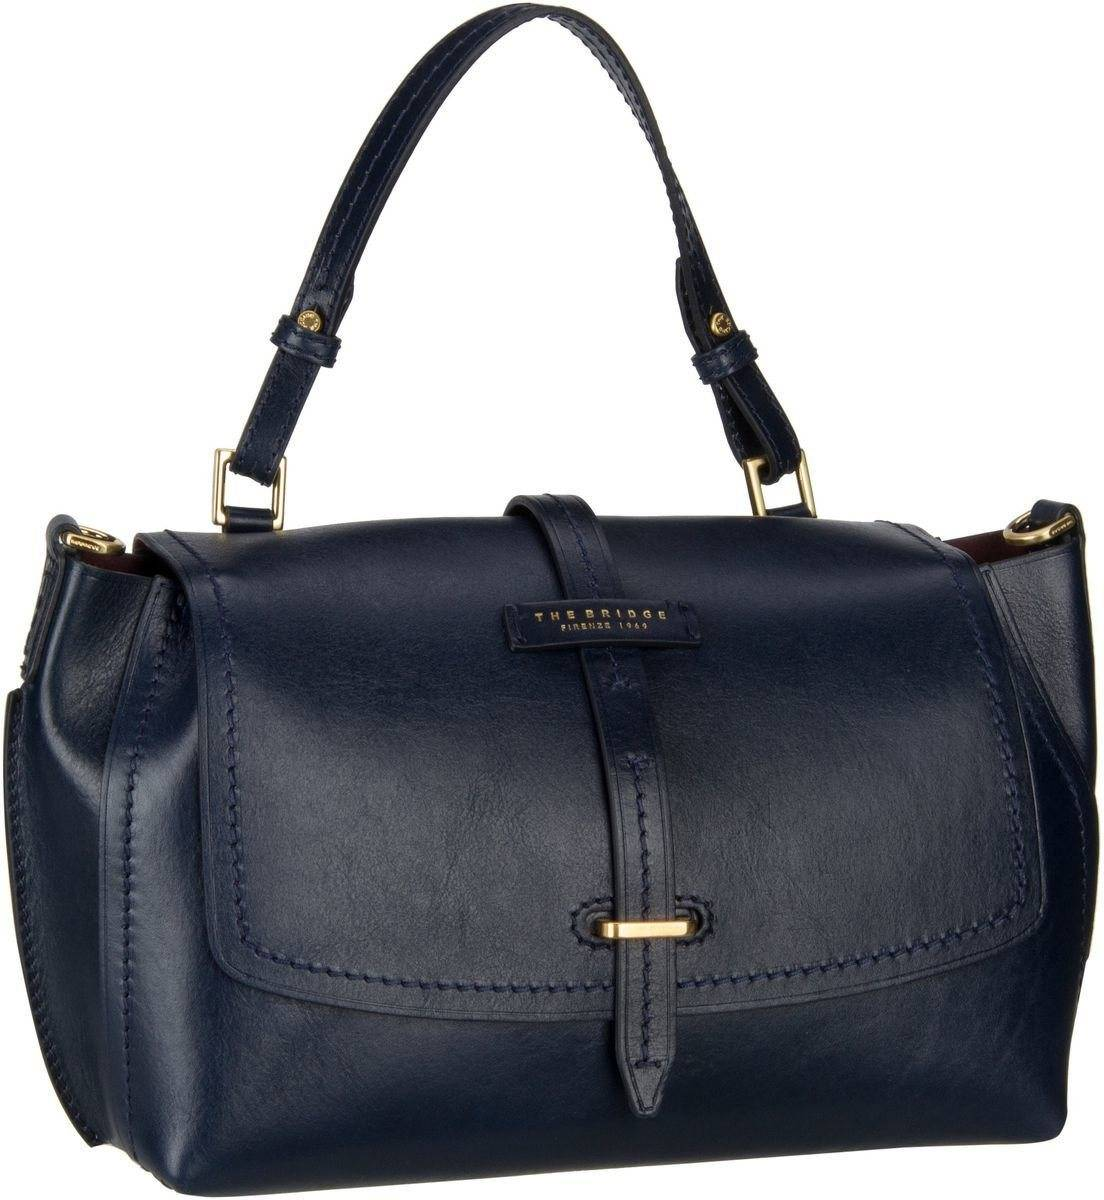 THE BRIDGE Handtasche »Florentin Damentasche 3407«, Blu Navy/Oro Vintage